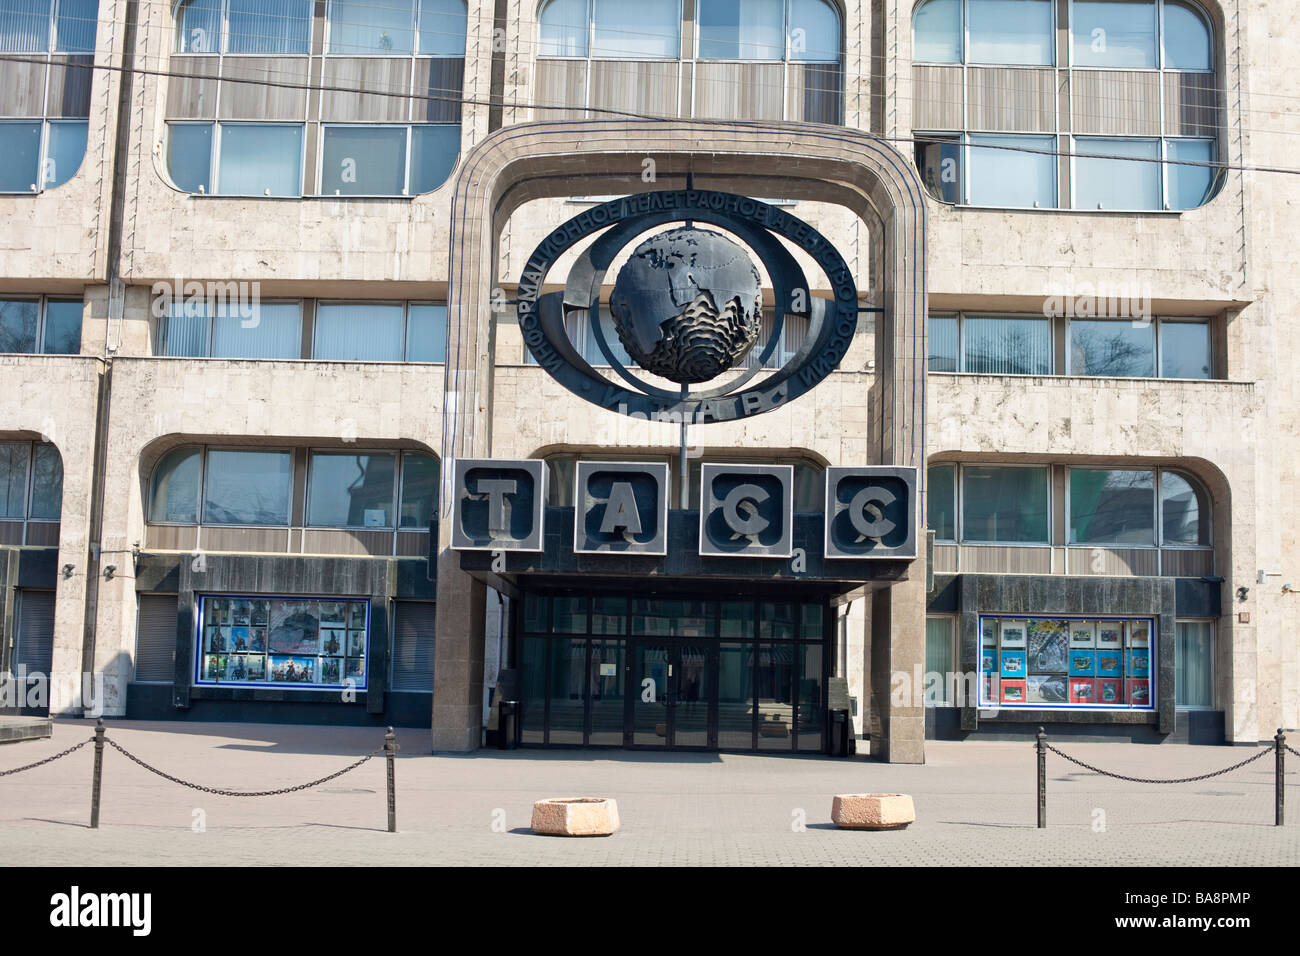 Itar - Tass , Russian news agency building in Moscow, Russia. - Stock Image